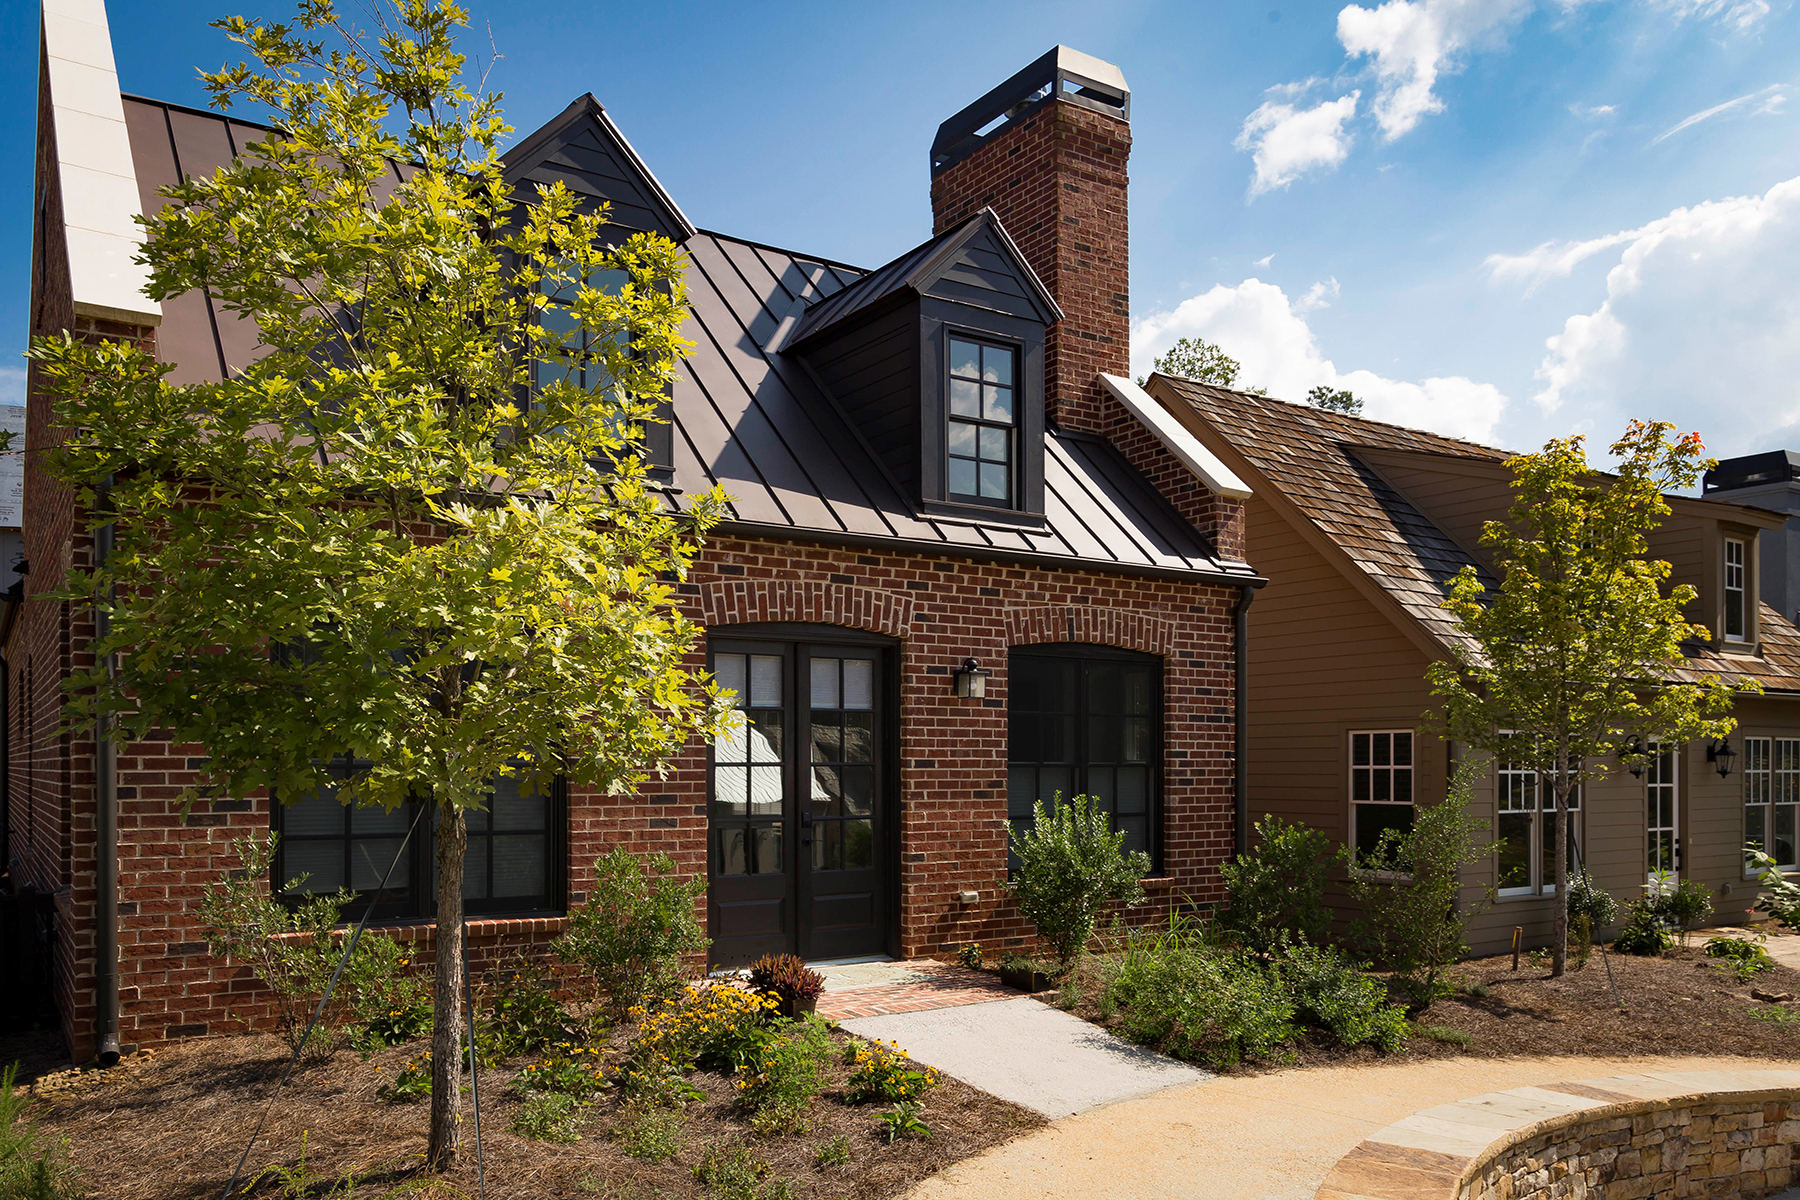 Single Family Homes for Active at Charming One-Level Cottage In Mado Section Of Serenbe 337 Anders North Chattahoochee Hills, Georgia 30268 United States